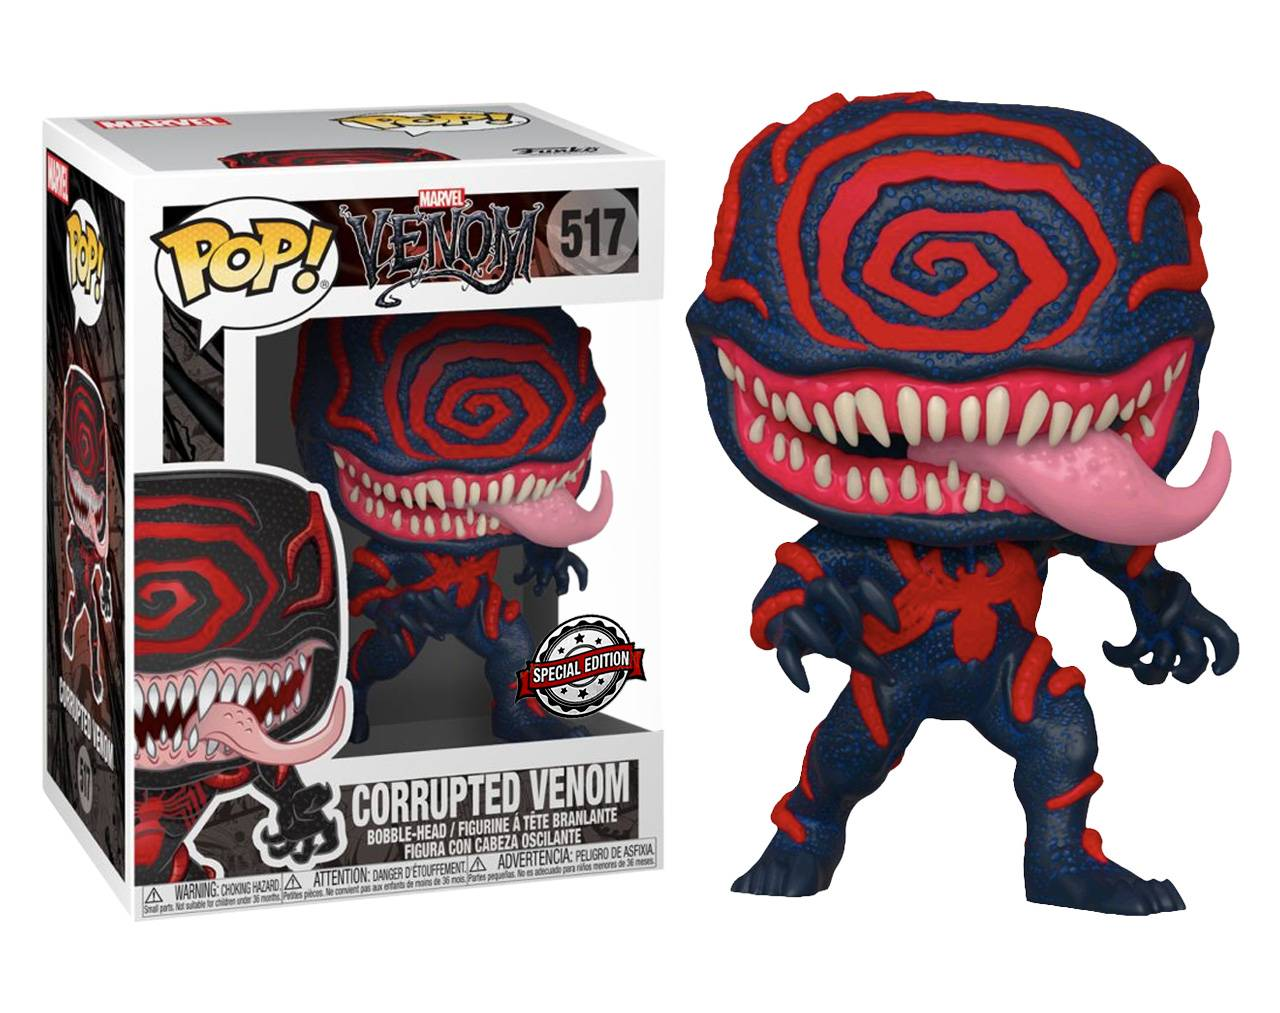 Corrupted Venom Pop! Vinyl